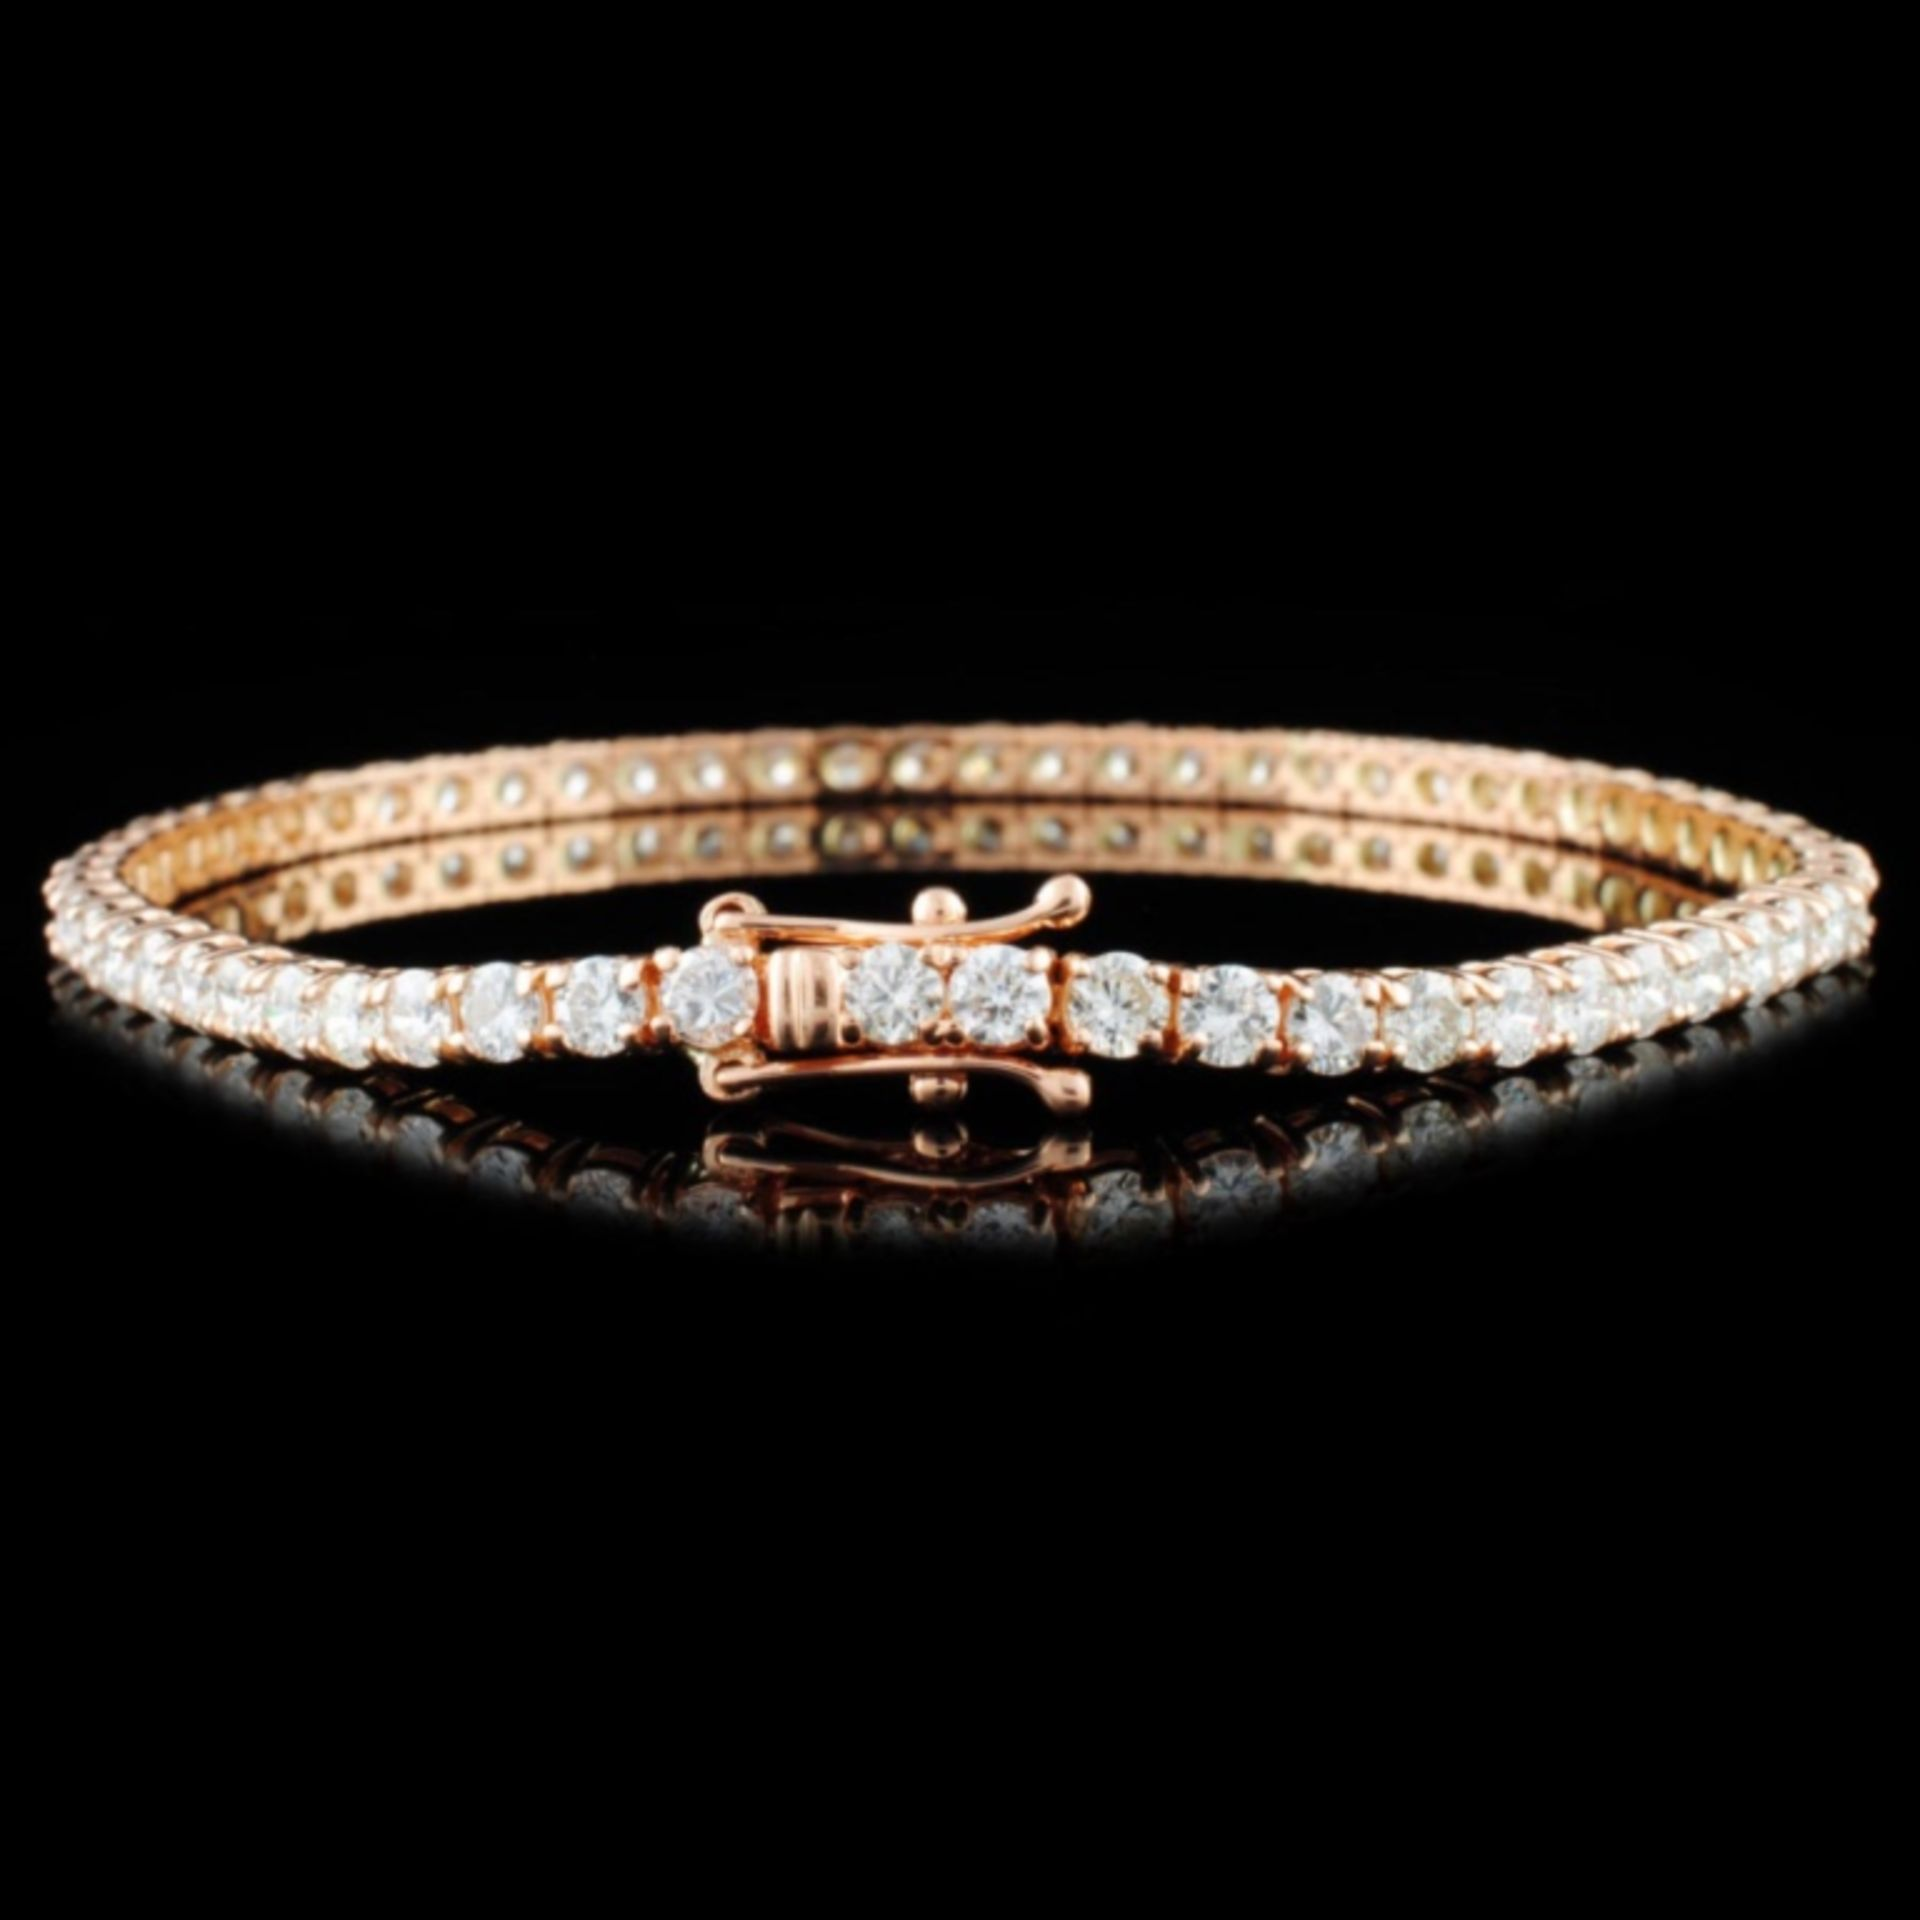 14K Gold 5.20ctw Diamond Bracelet - Image 2 of 3